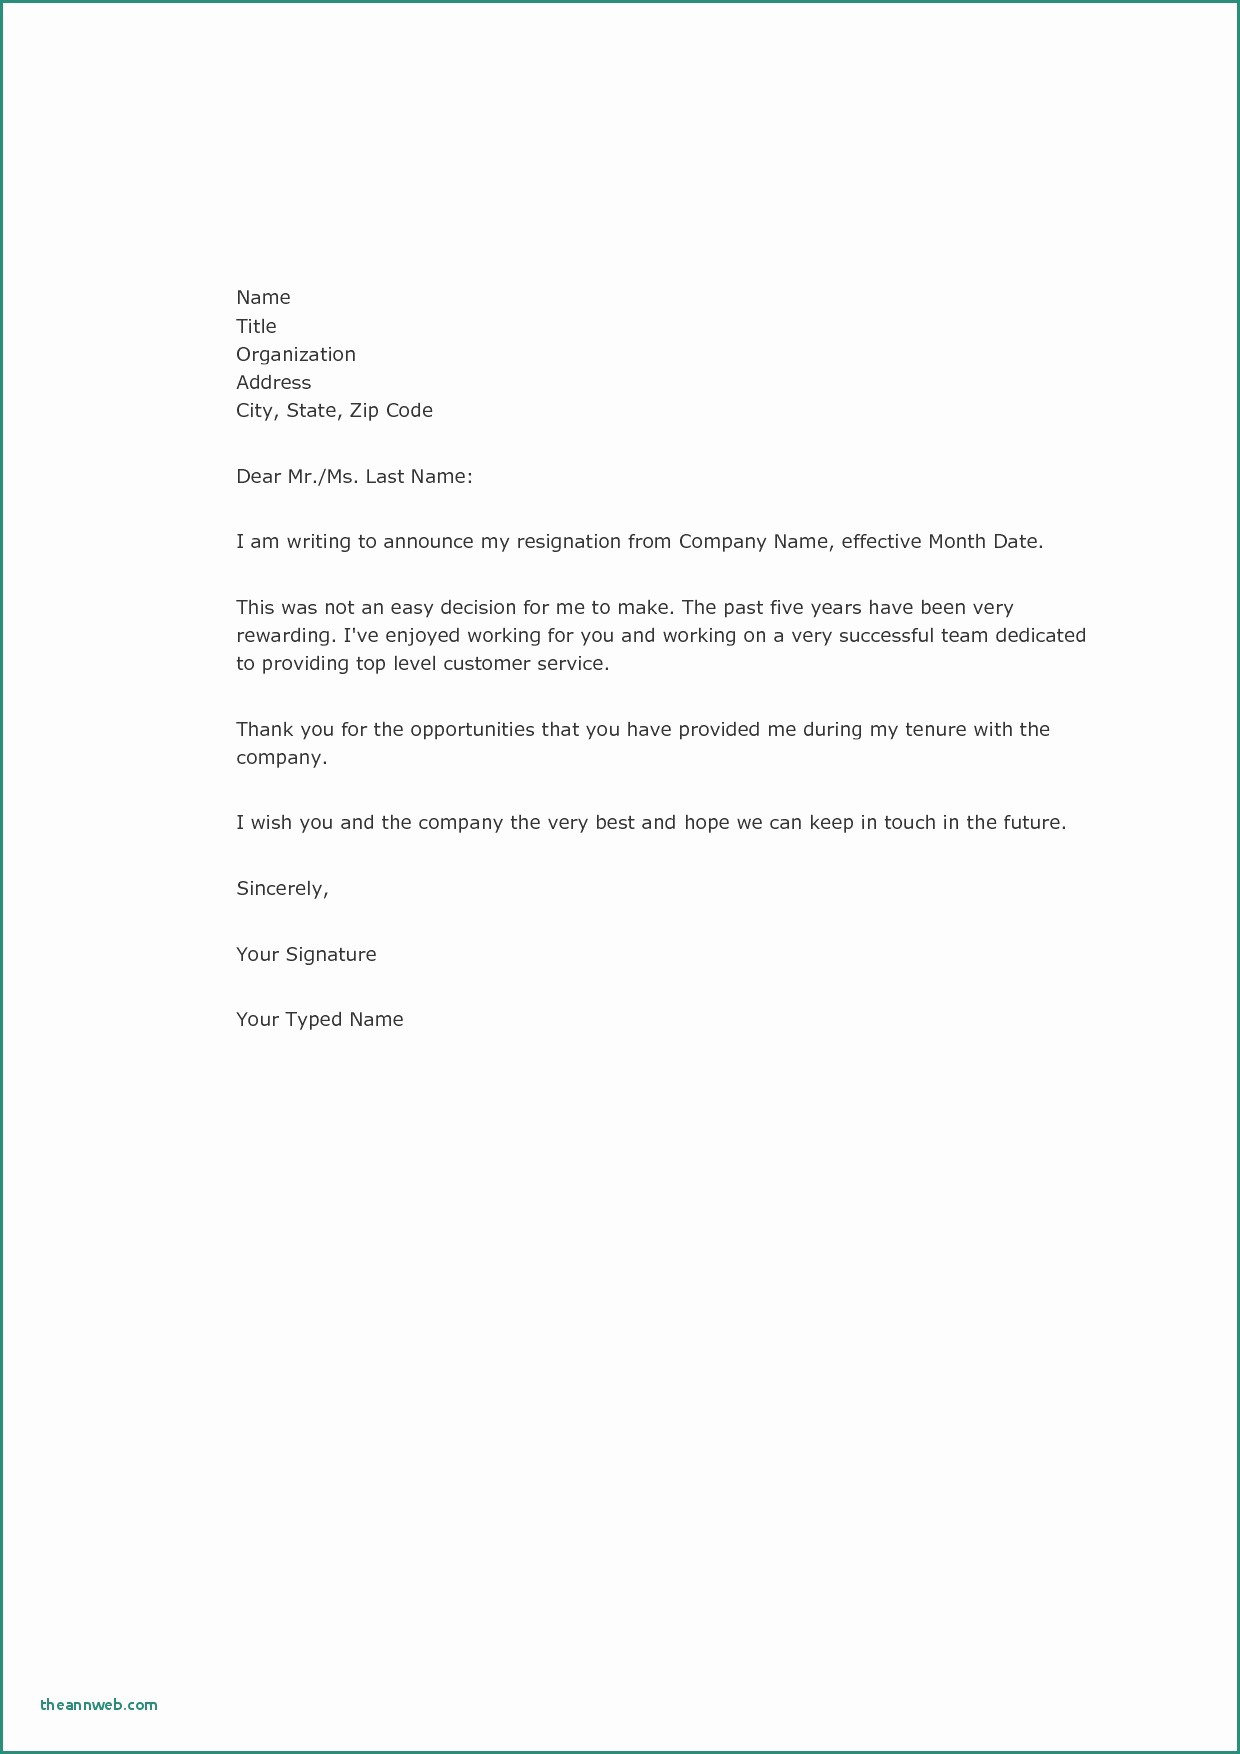 Letter Of Resignation Template Microsoft Elegant Template Letters Resignation Two Week Notice Template